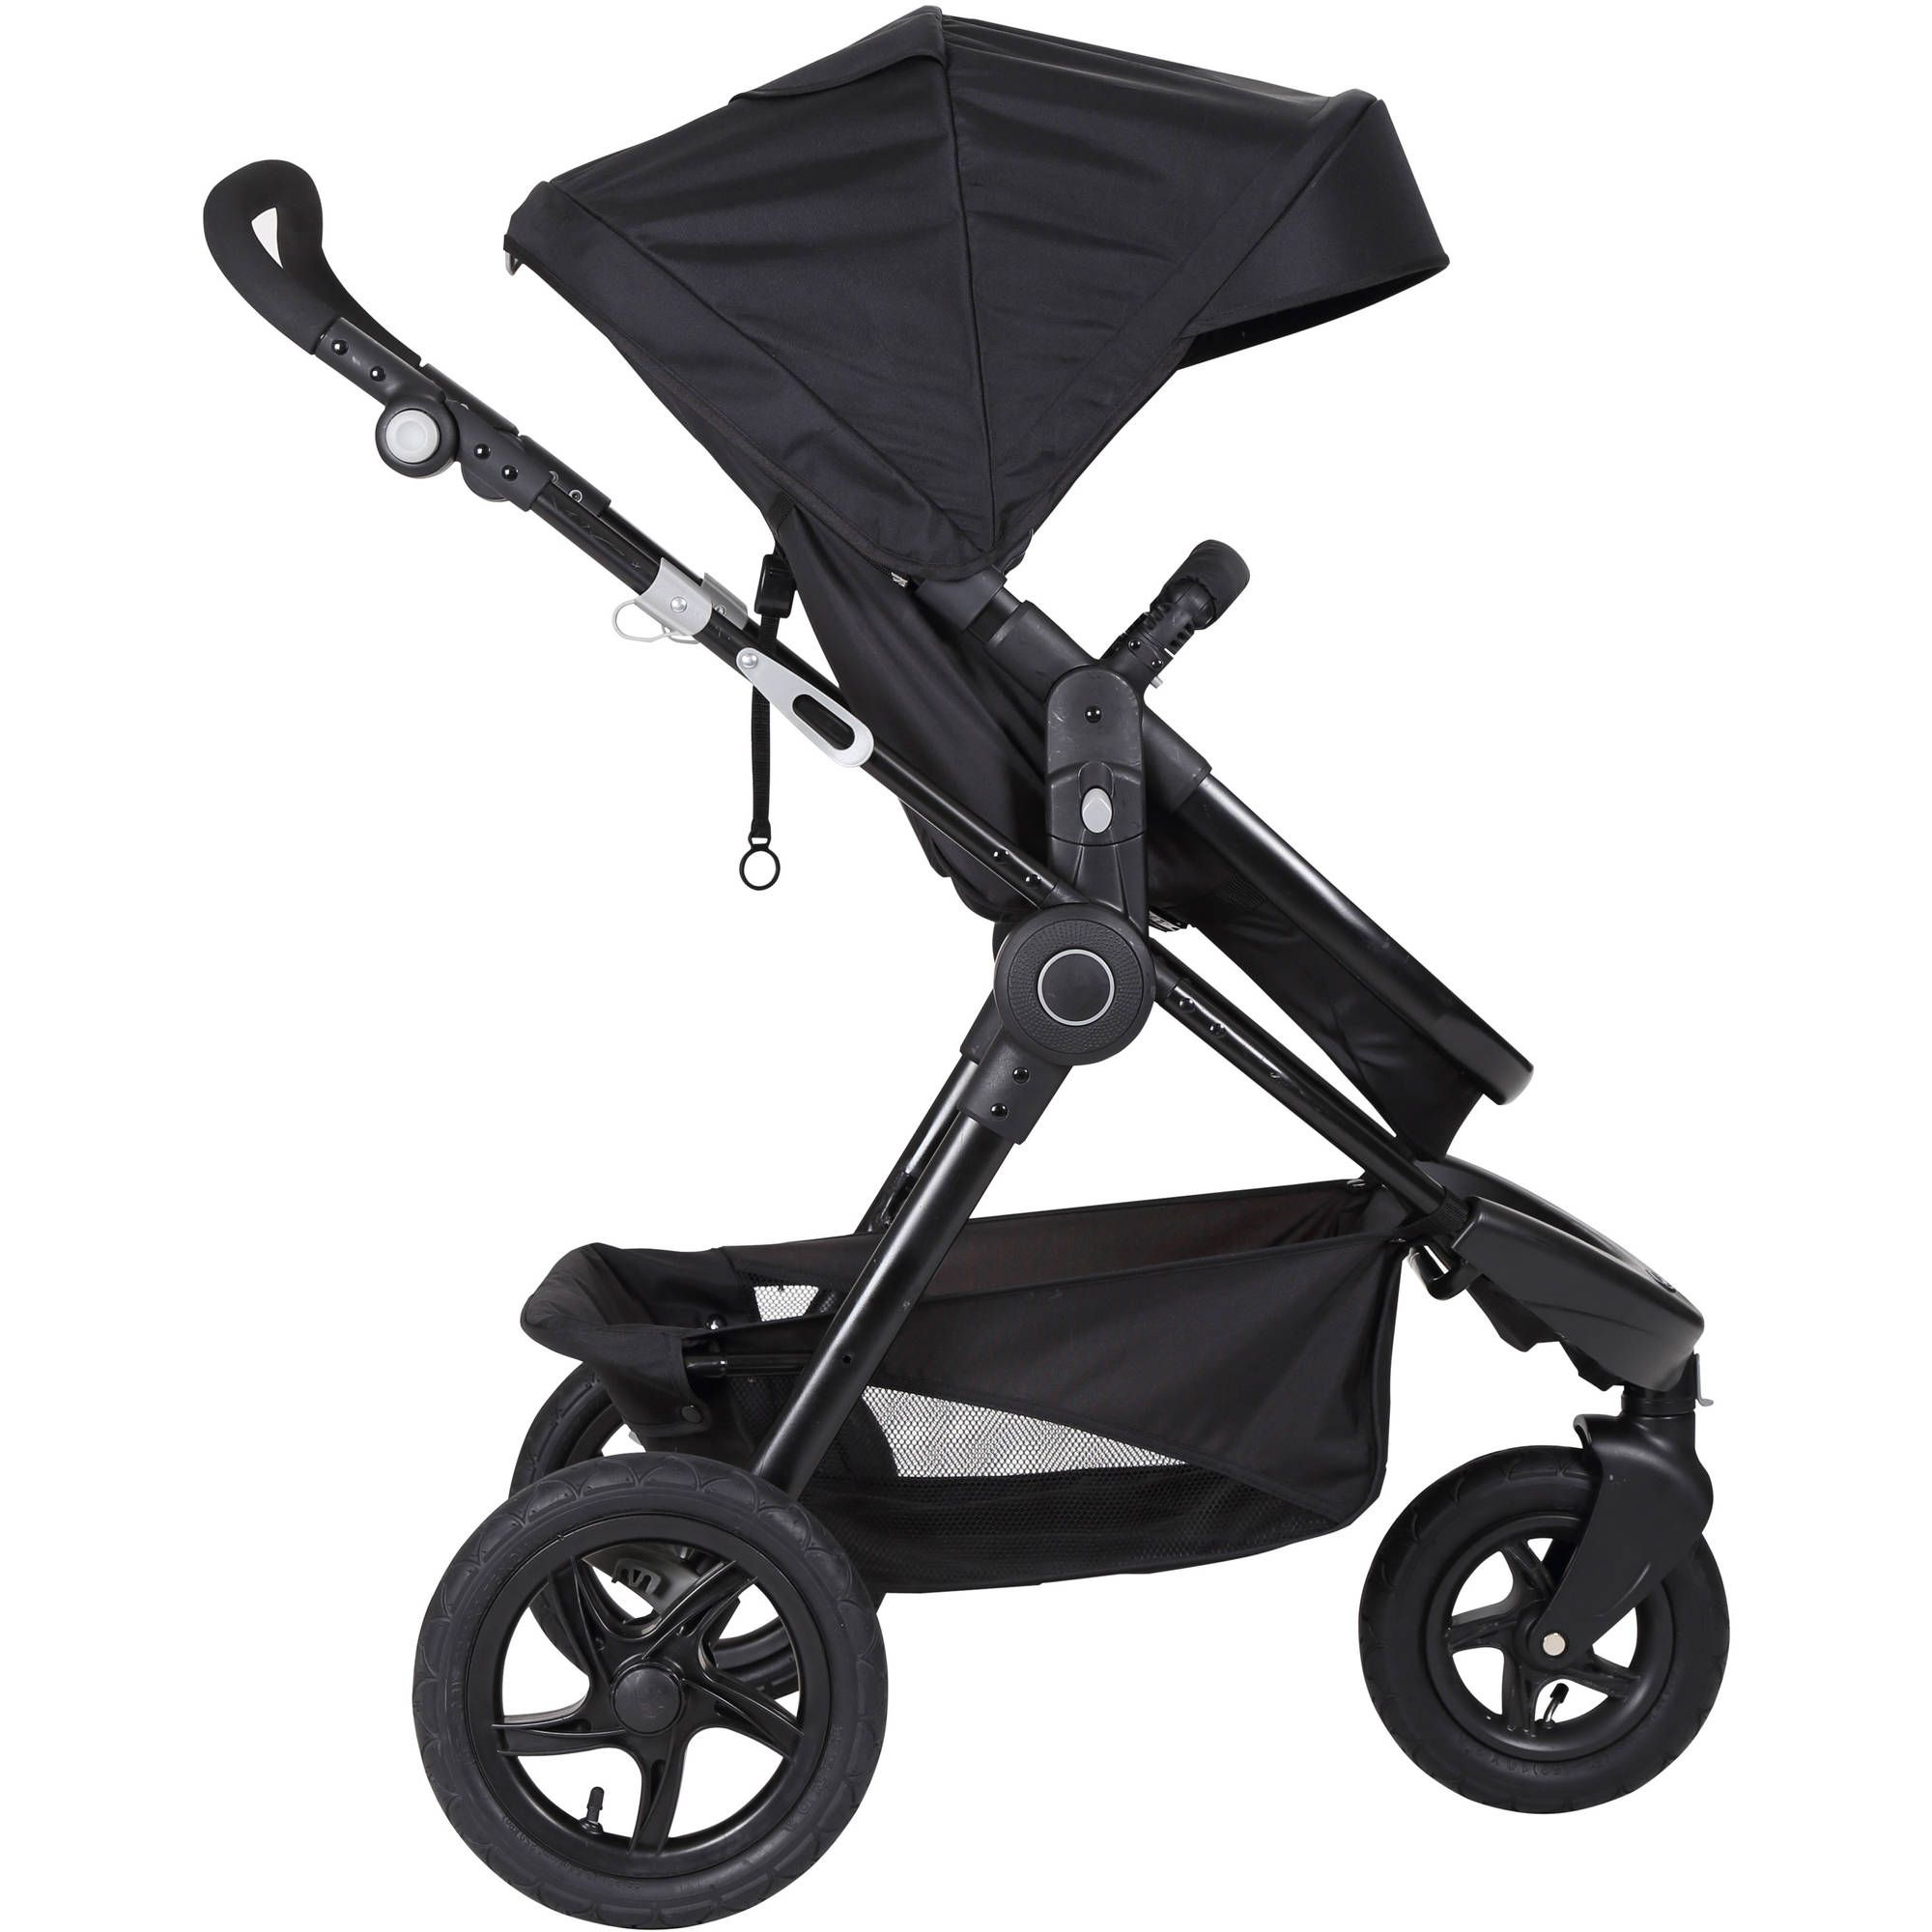 stroller For 3 baby trend-#stroller #For #3 #baby #trend Please Click Link To Find More Reference,,, ENJOY!!